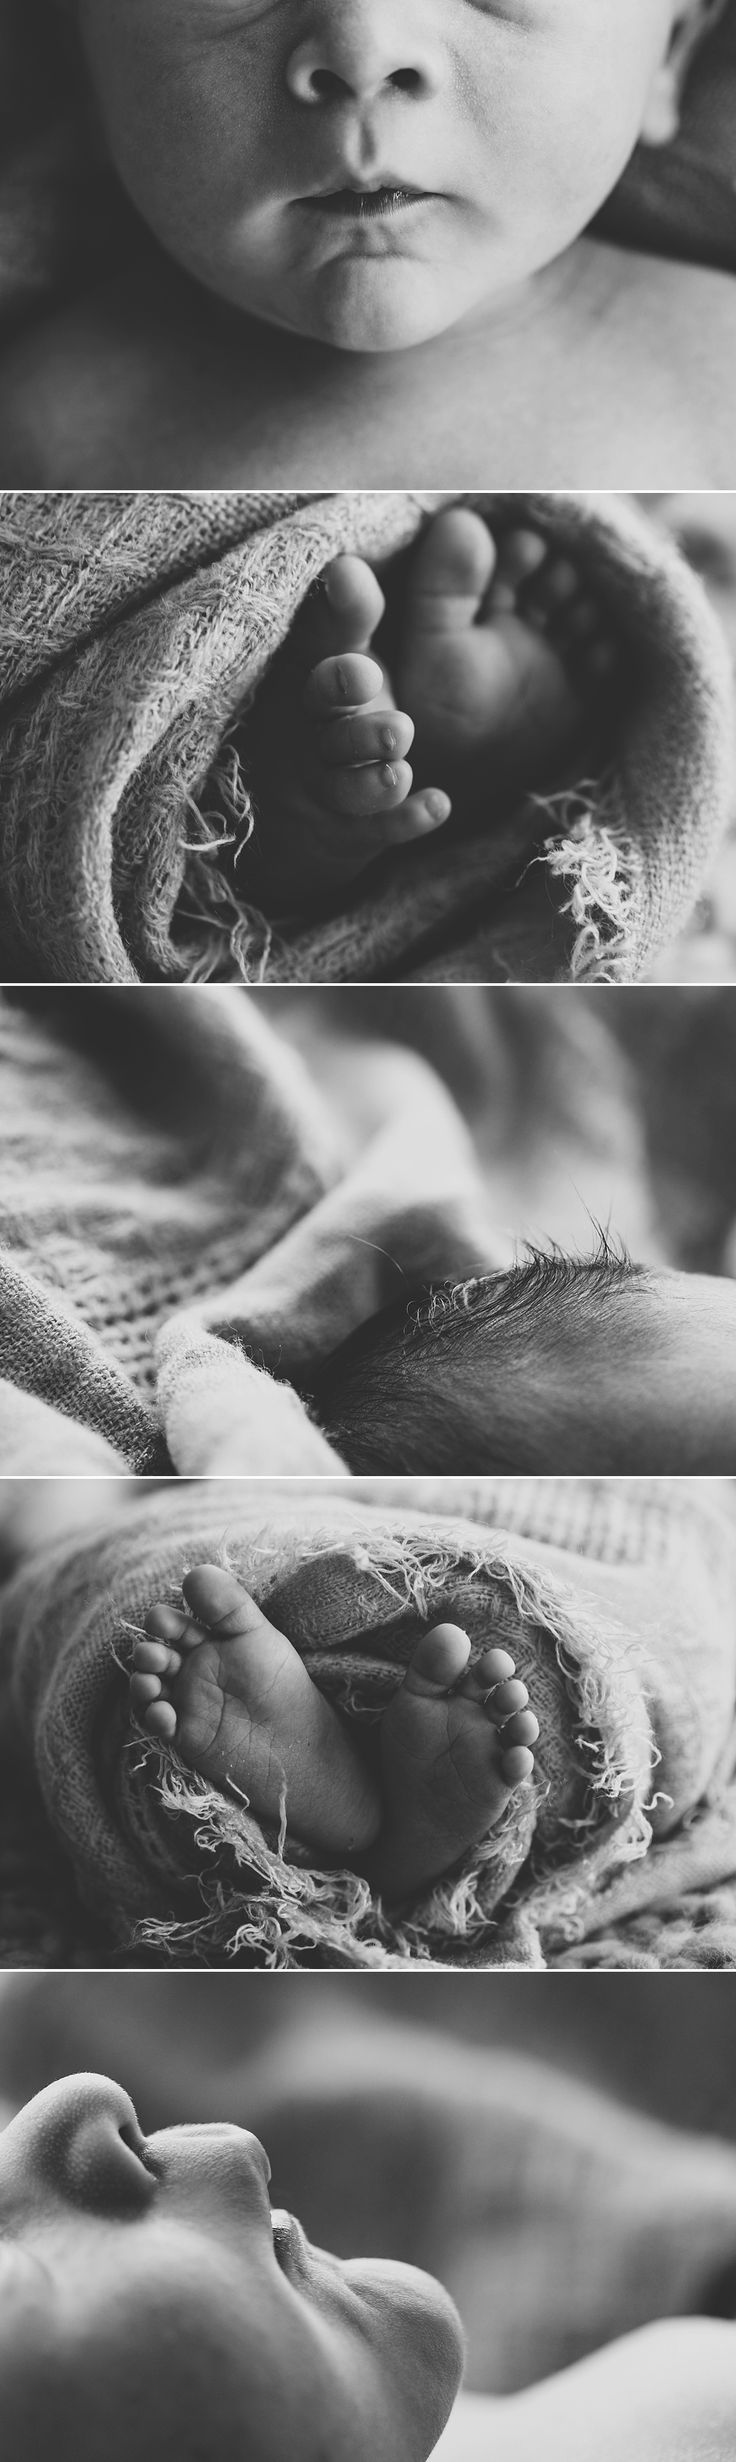 Suzie Ziemke Photography ∆ Janesville, Elysian, Mankato, MN Portrait and Lifestyle Photographer